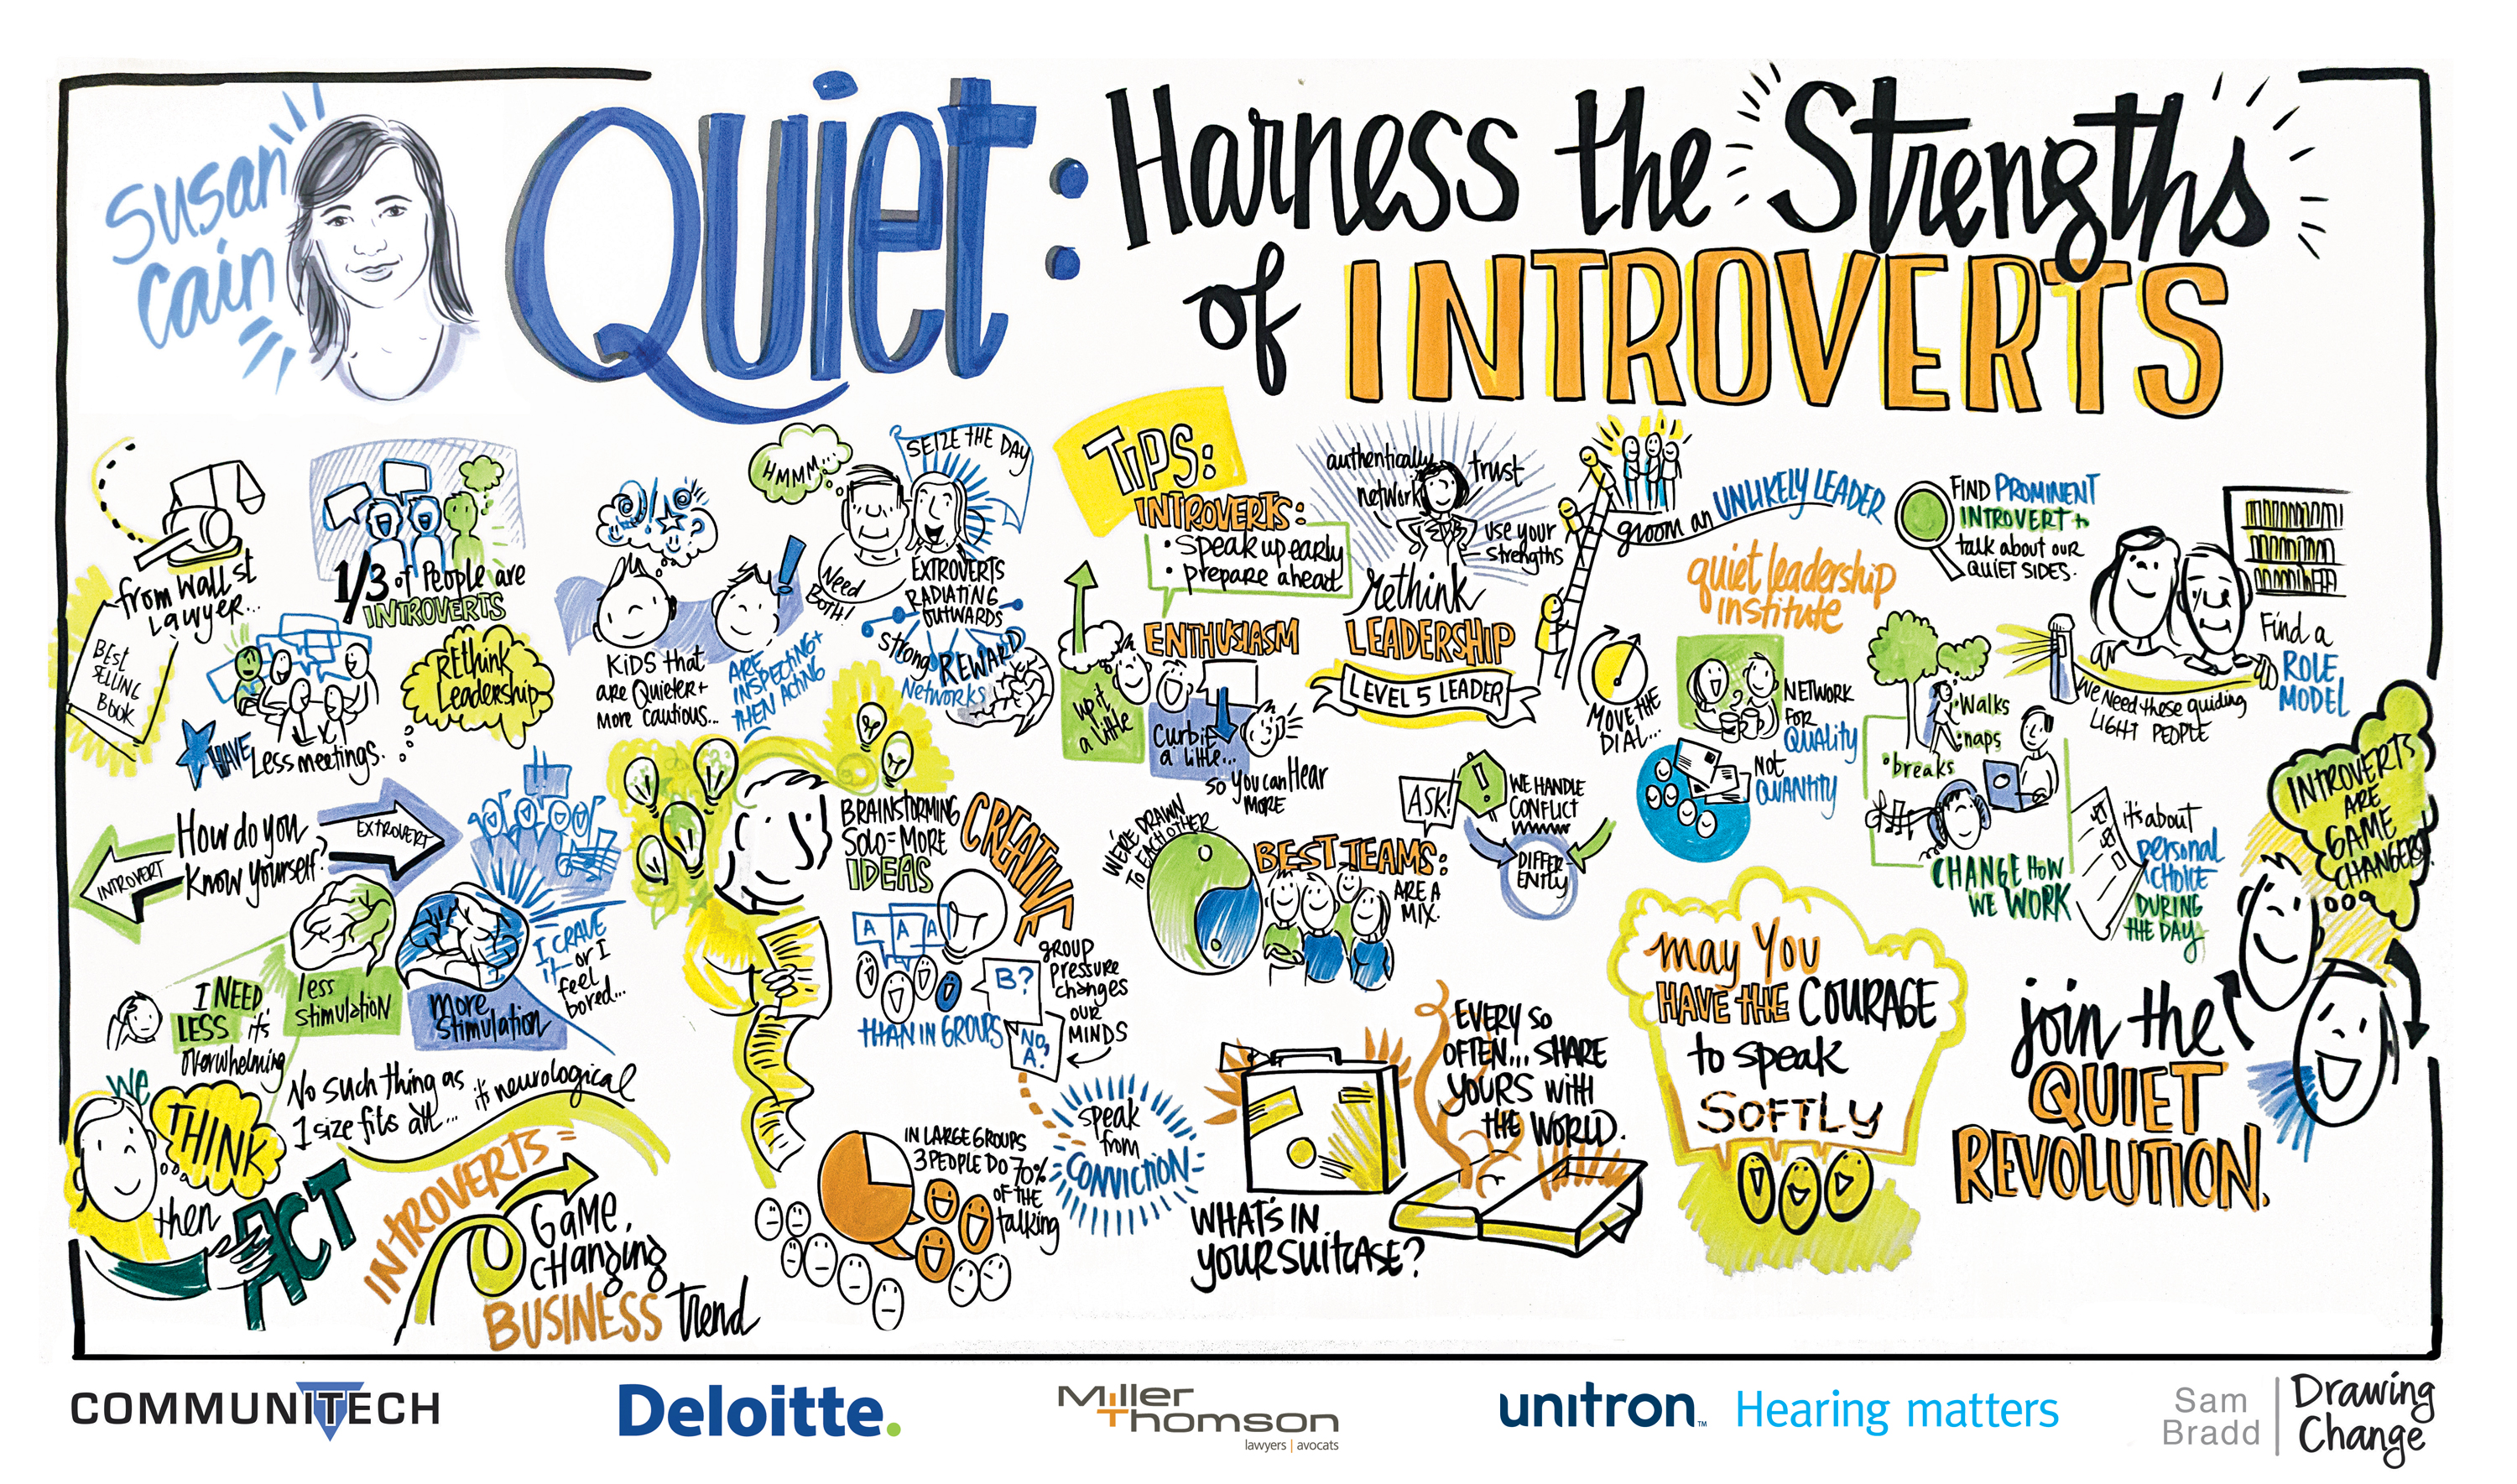 Graphic recording leadership with Communitech & Susan Cain